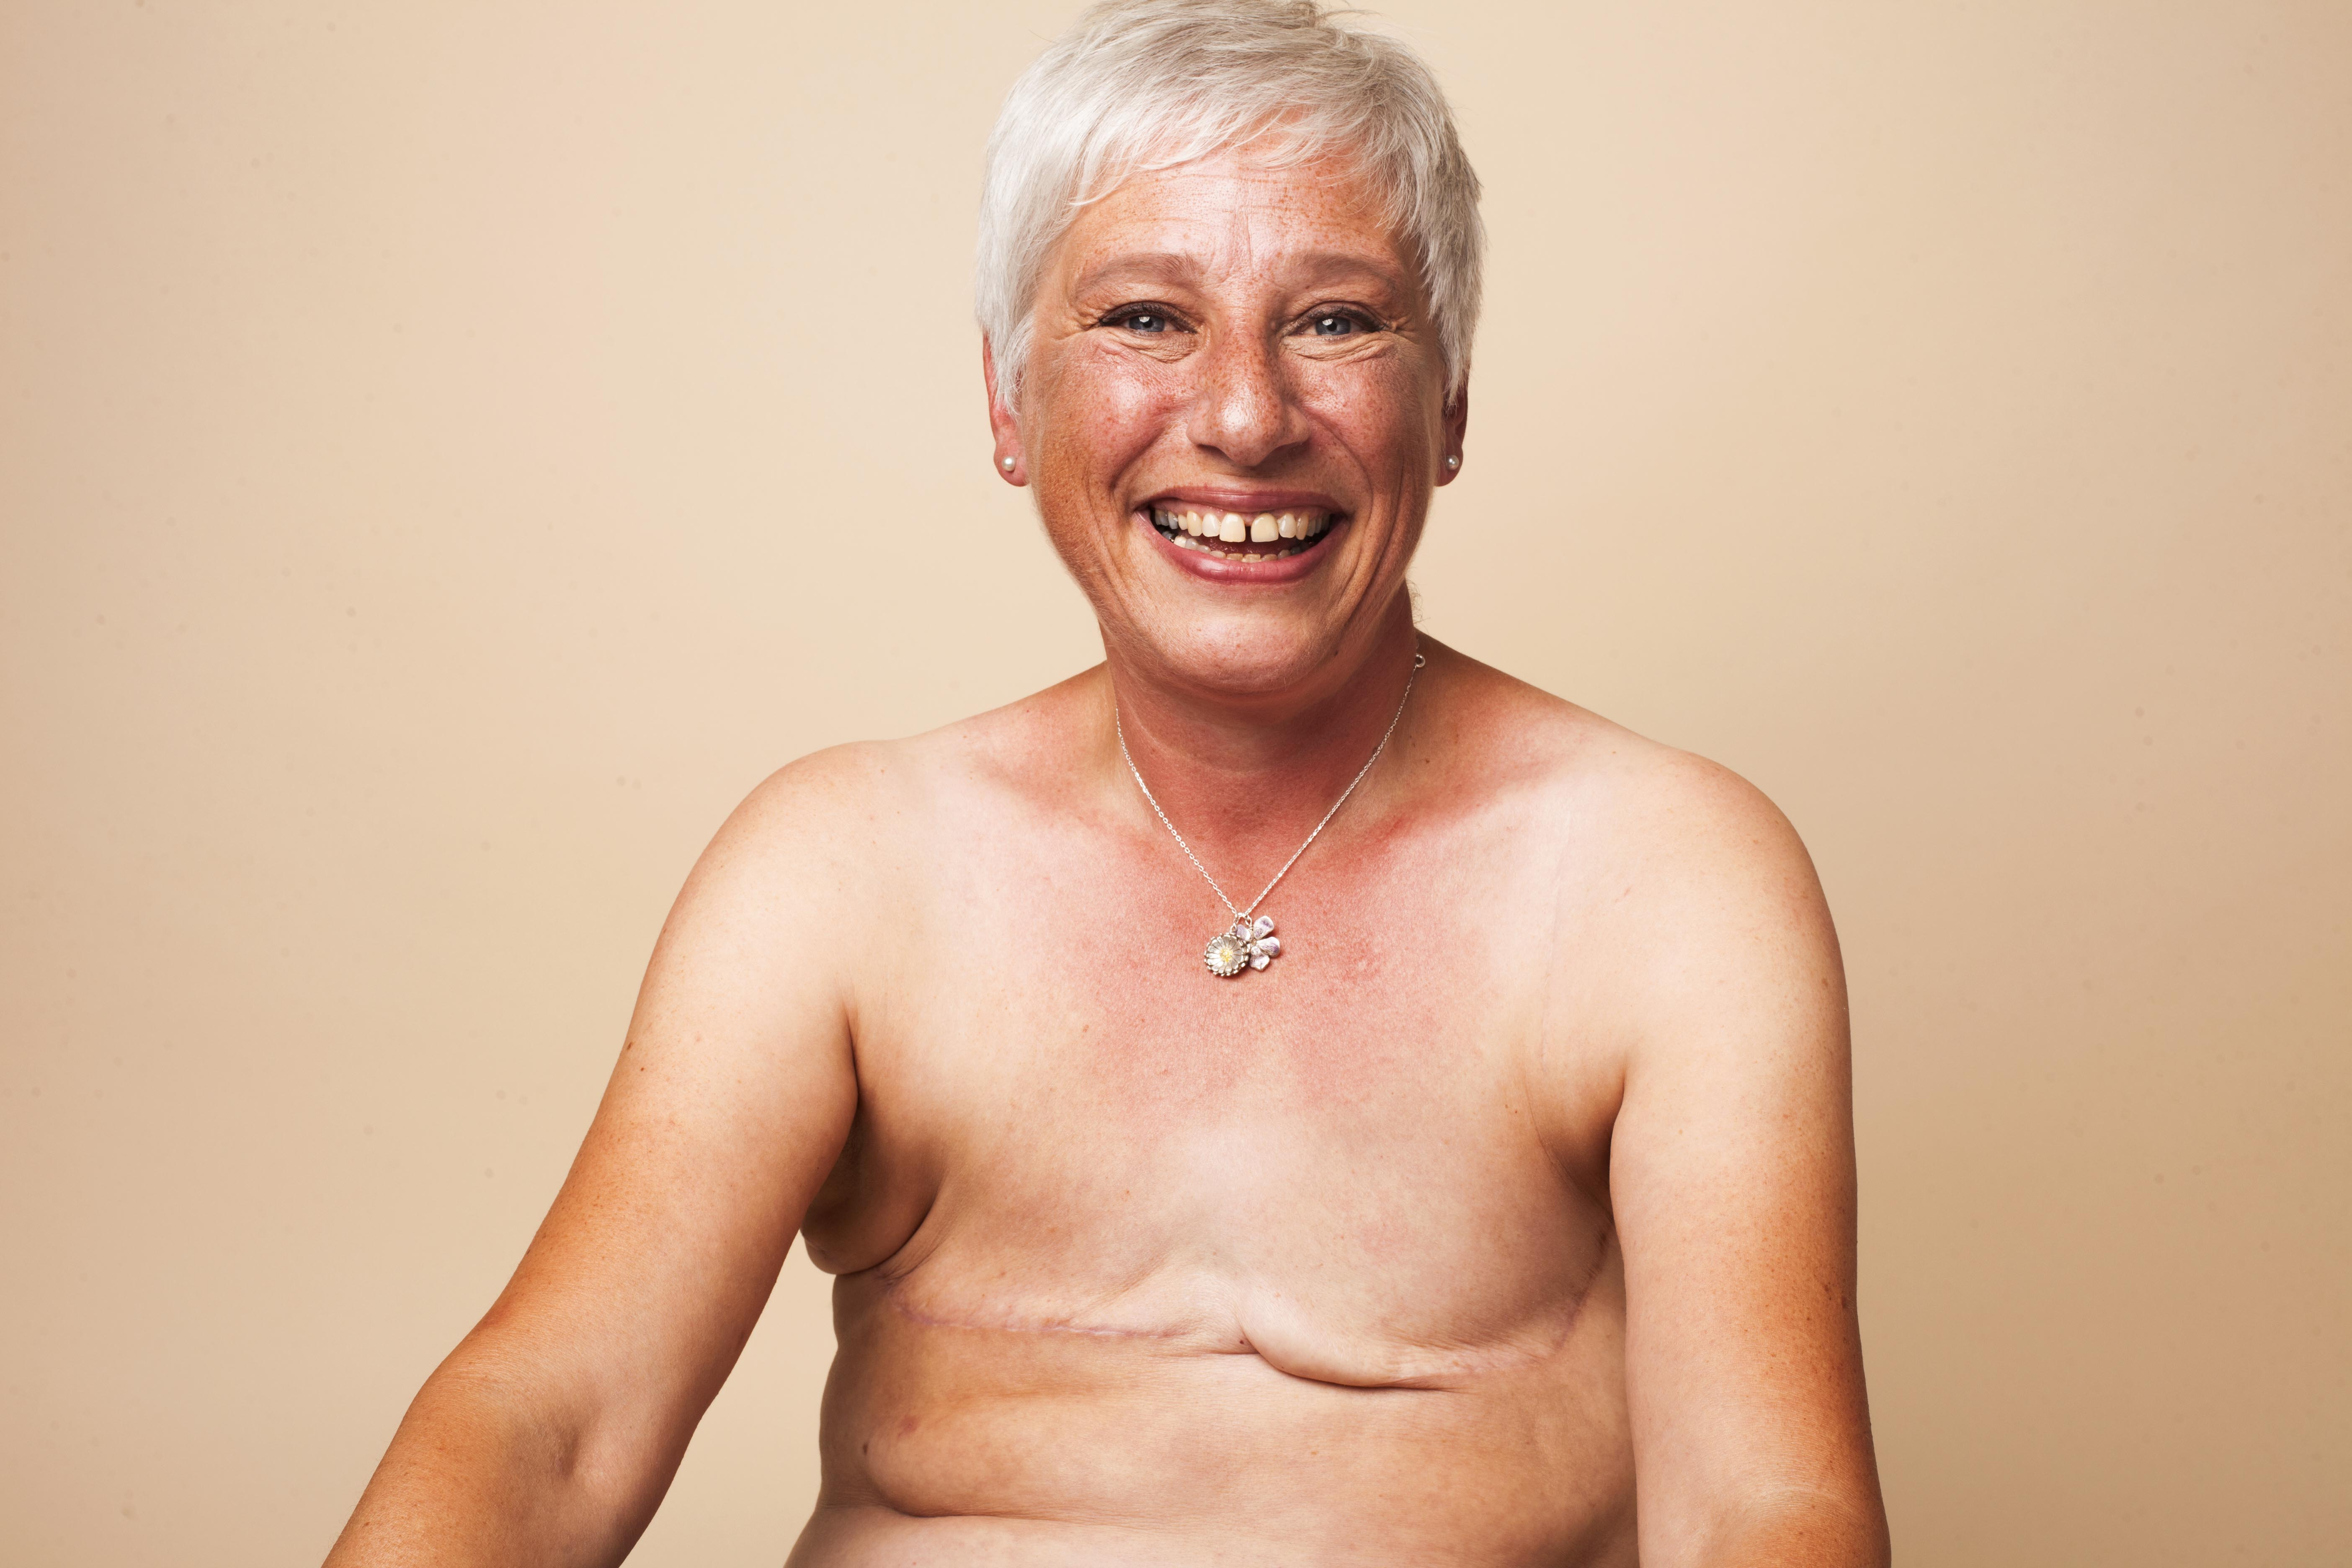 Strong Women: 'Surgeons didn't want to remove my healthy breast, but I know my own mind'